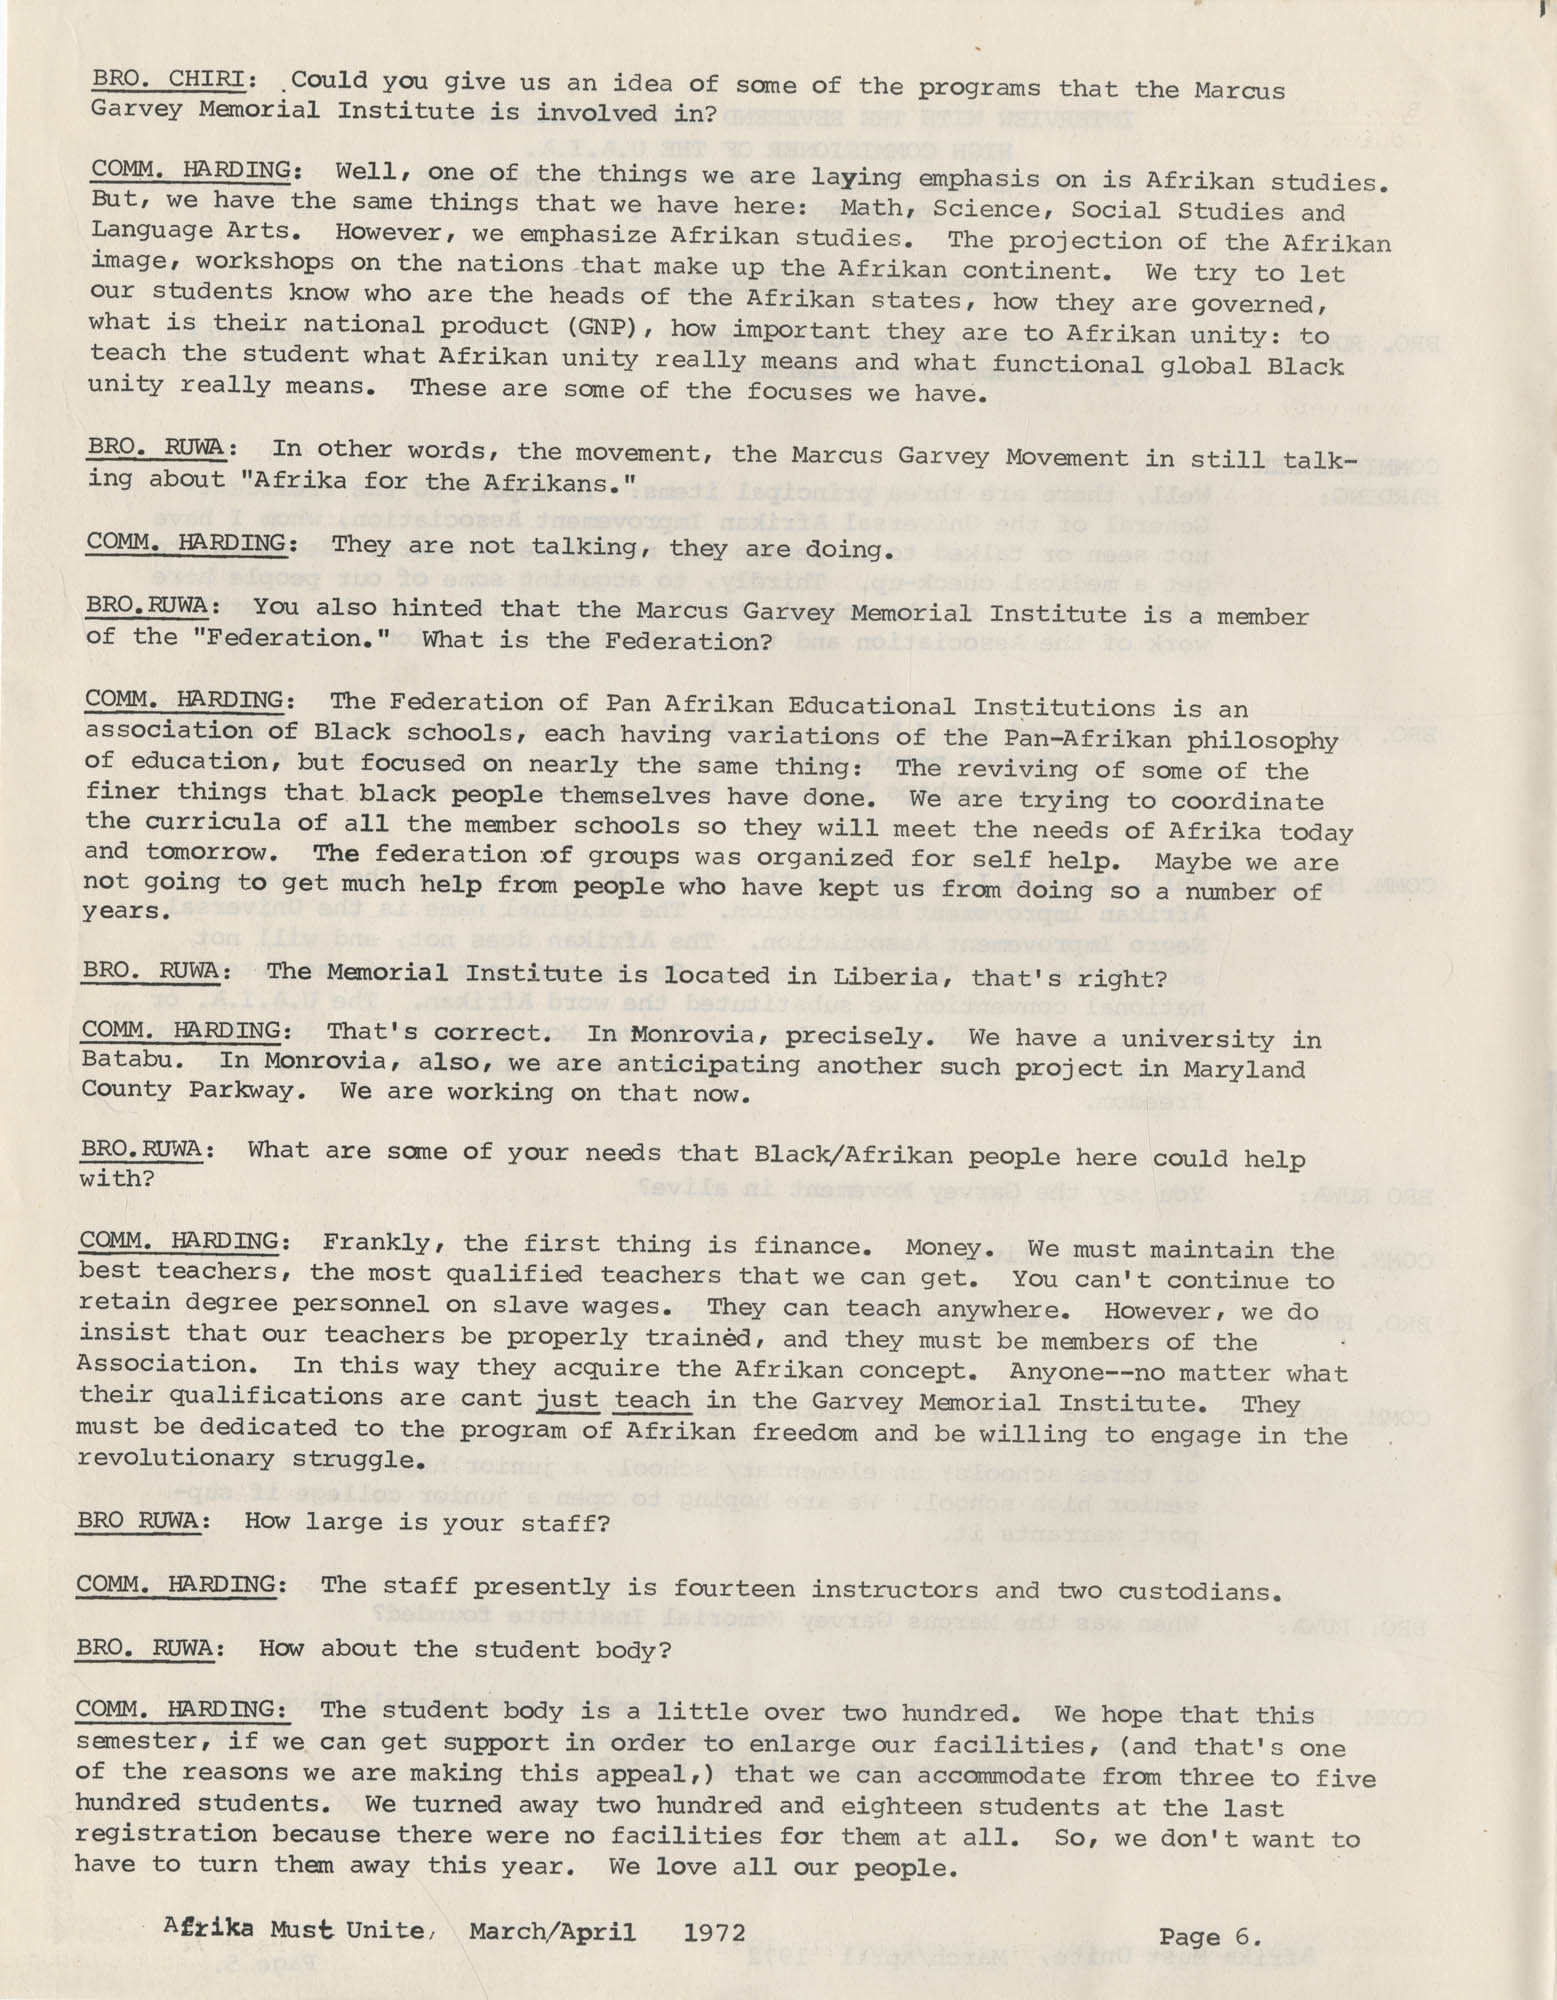 Afrika Must Unite, Vol. 1, No. 4, Page 6